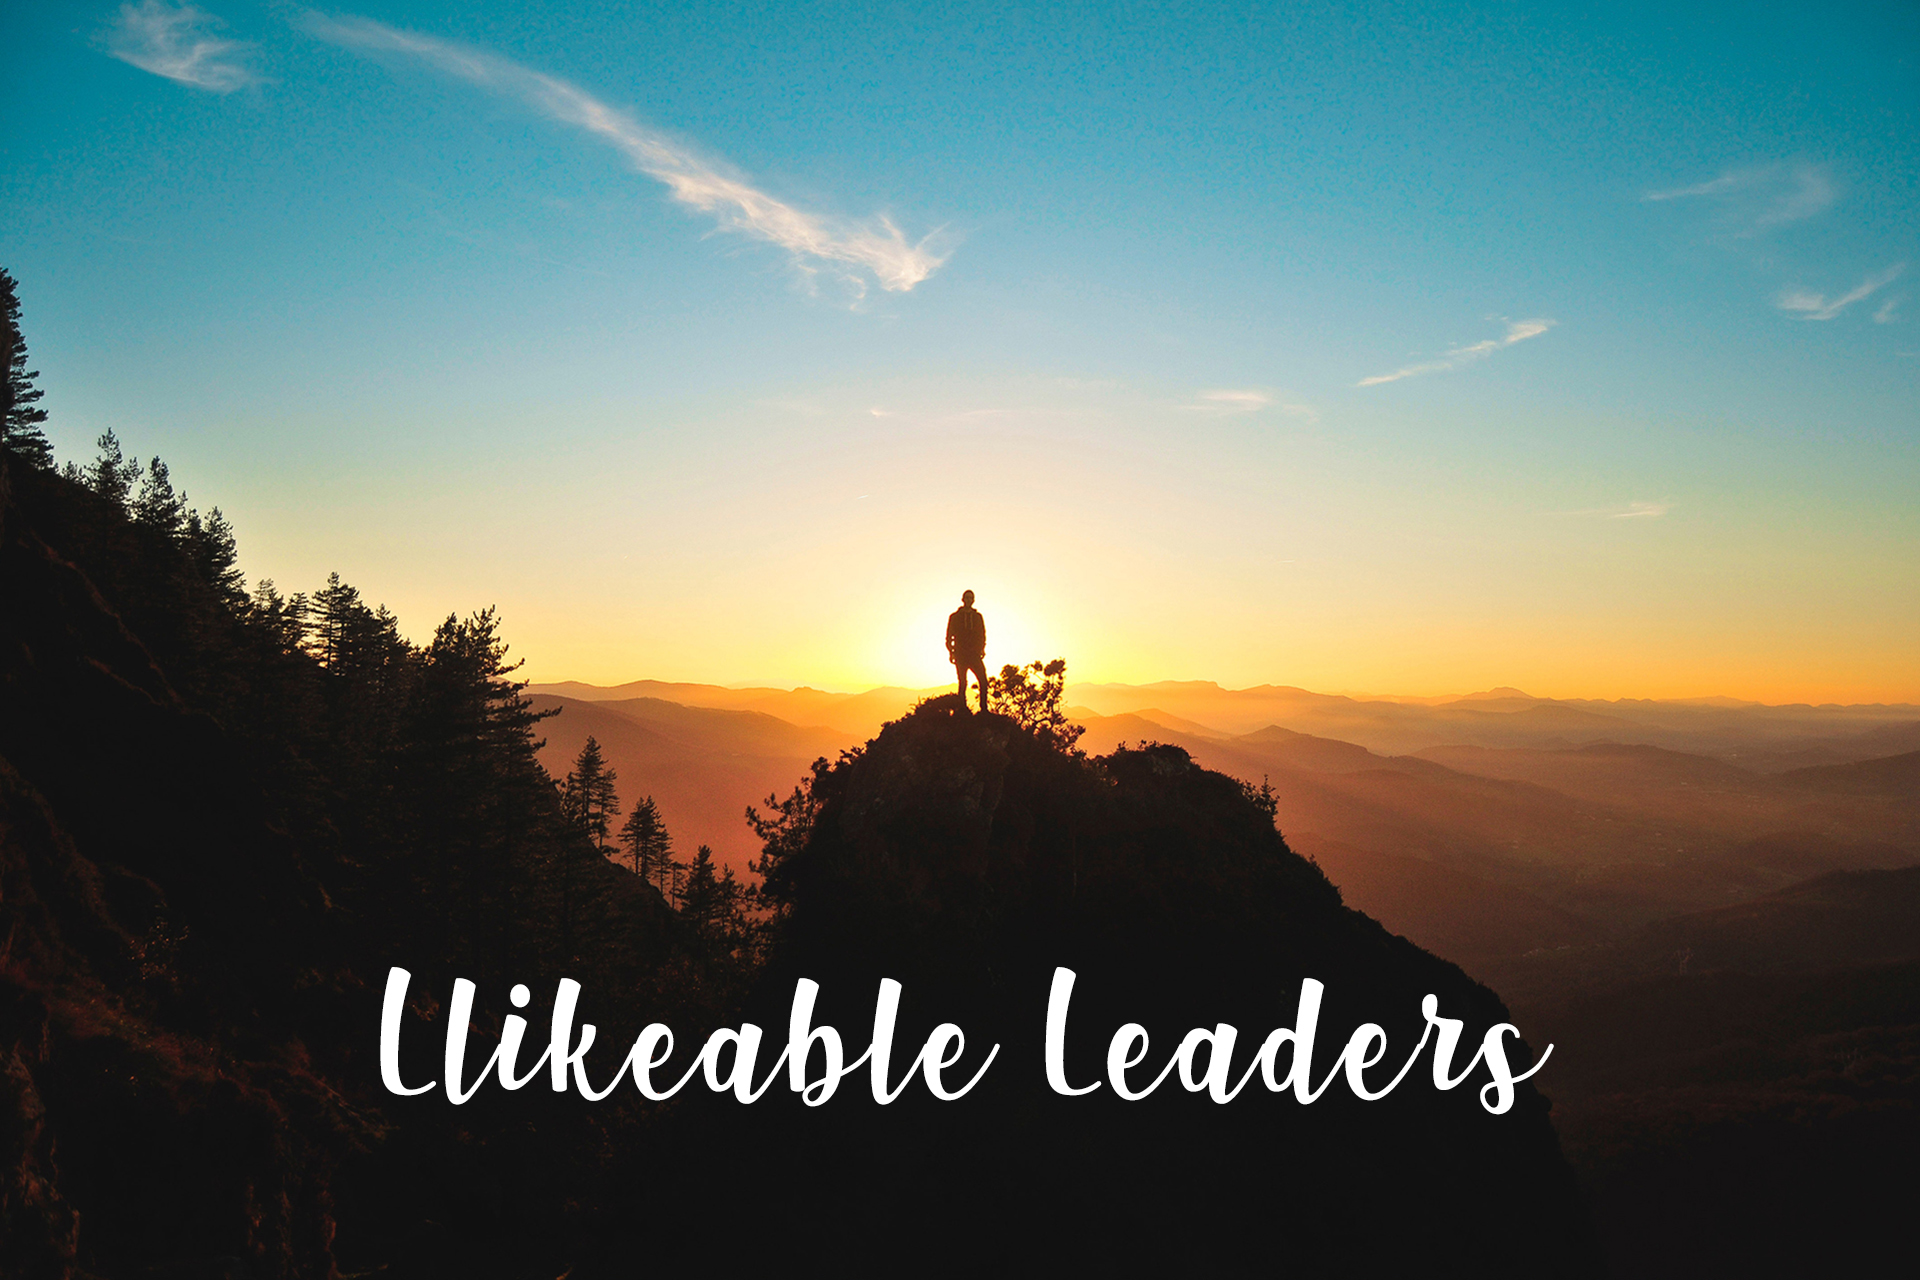 Likeable Leaders